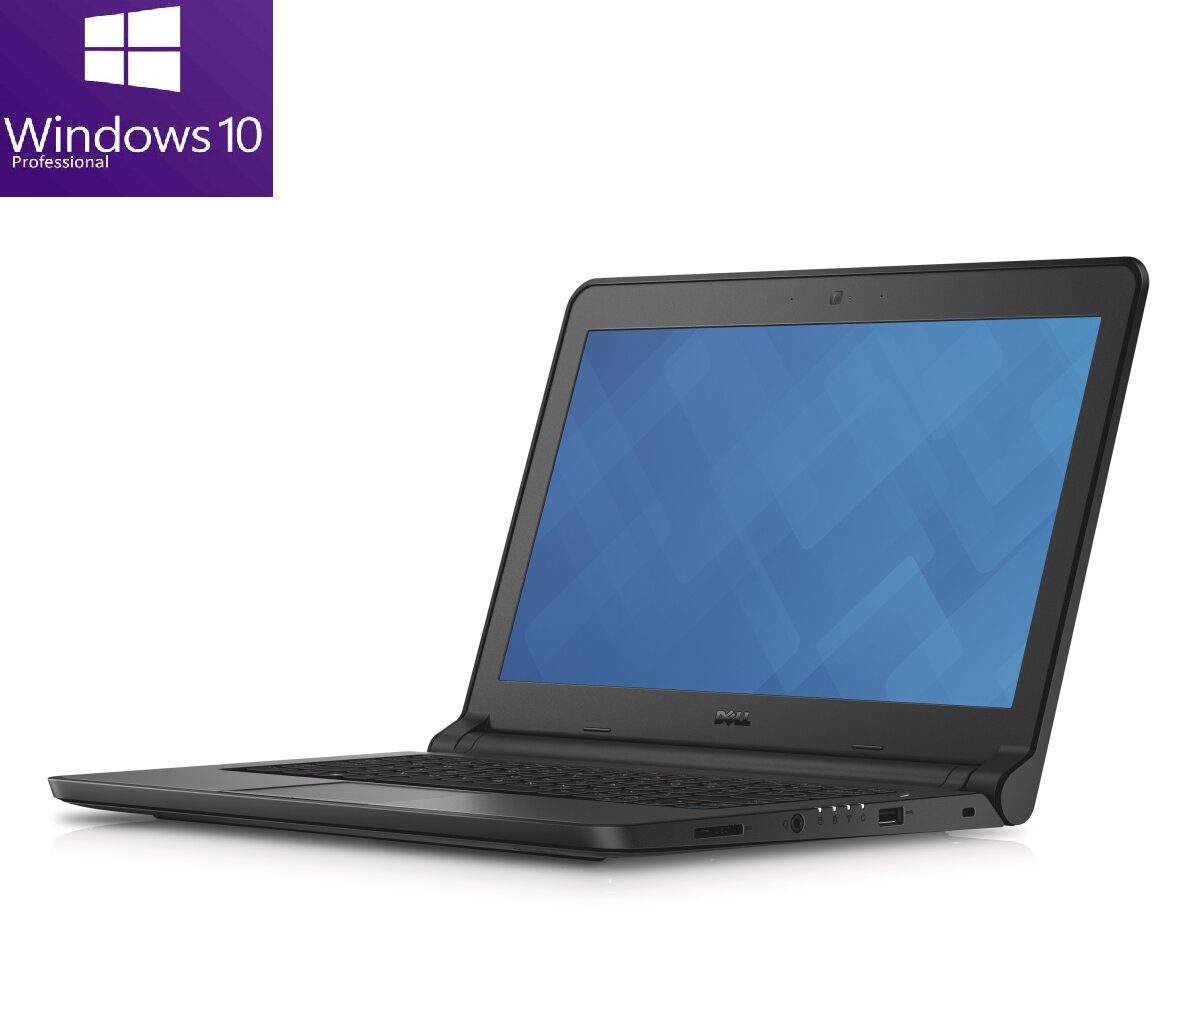 DELL Latitude 3340 i3-4005U 4GB 500GB Win 10 PRO